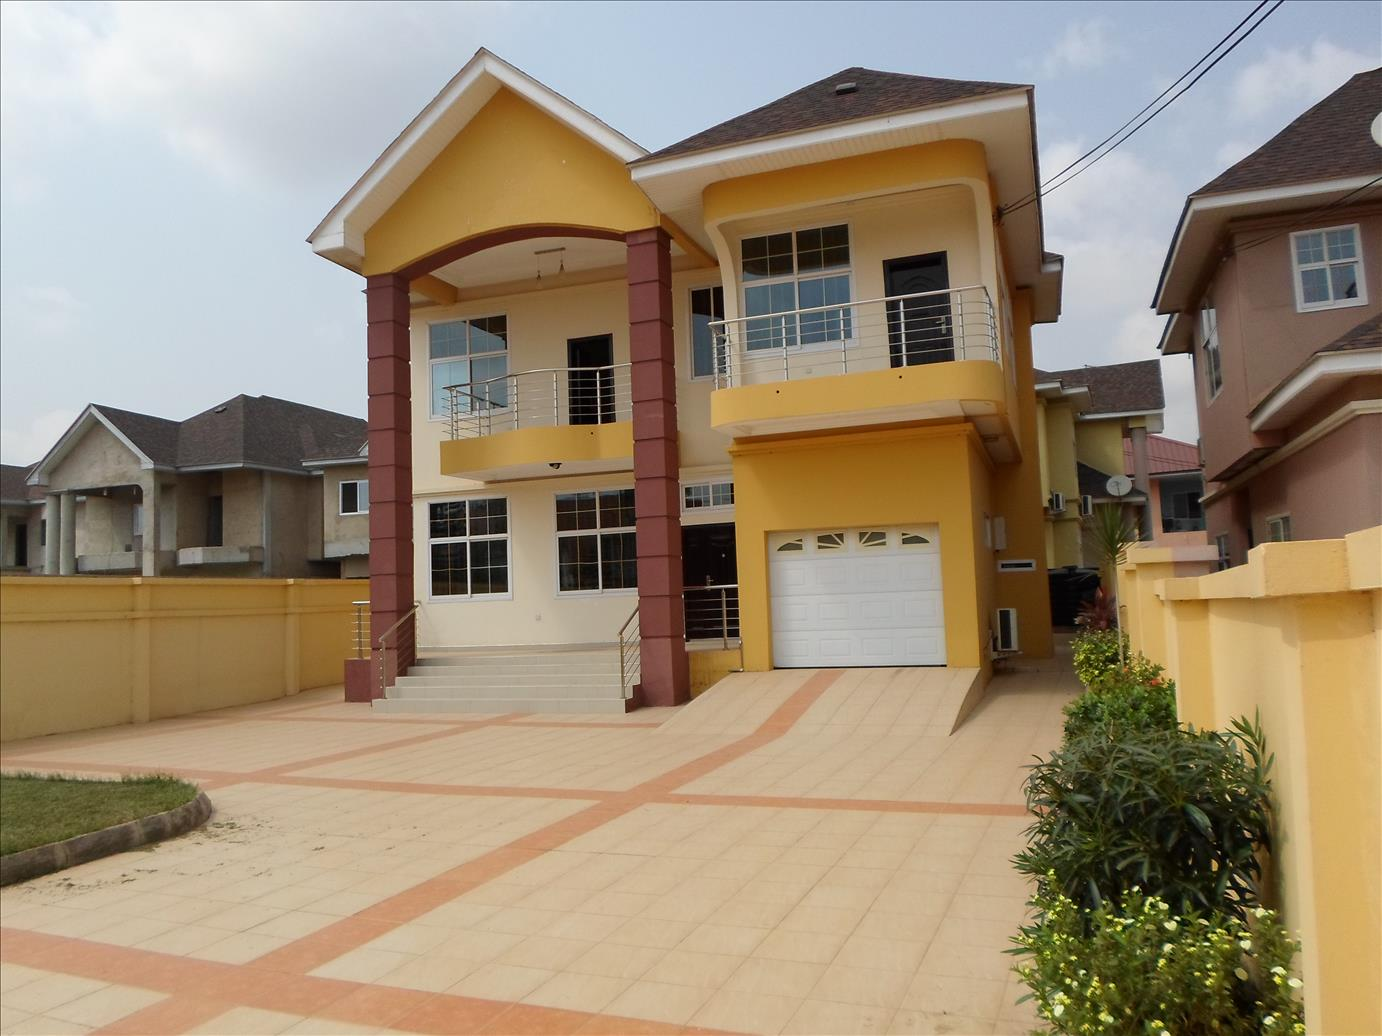 Owning A Home Your Complete Guide To Buying A House In Ghana Pulse Ghana